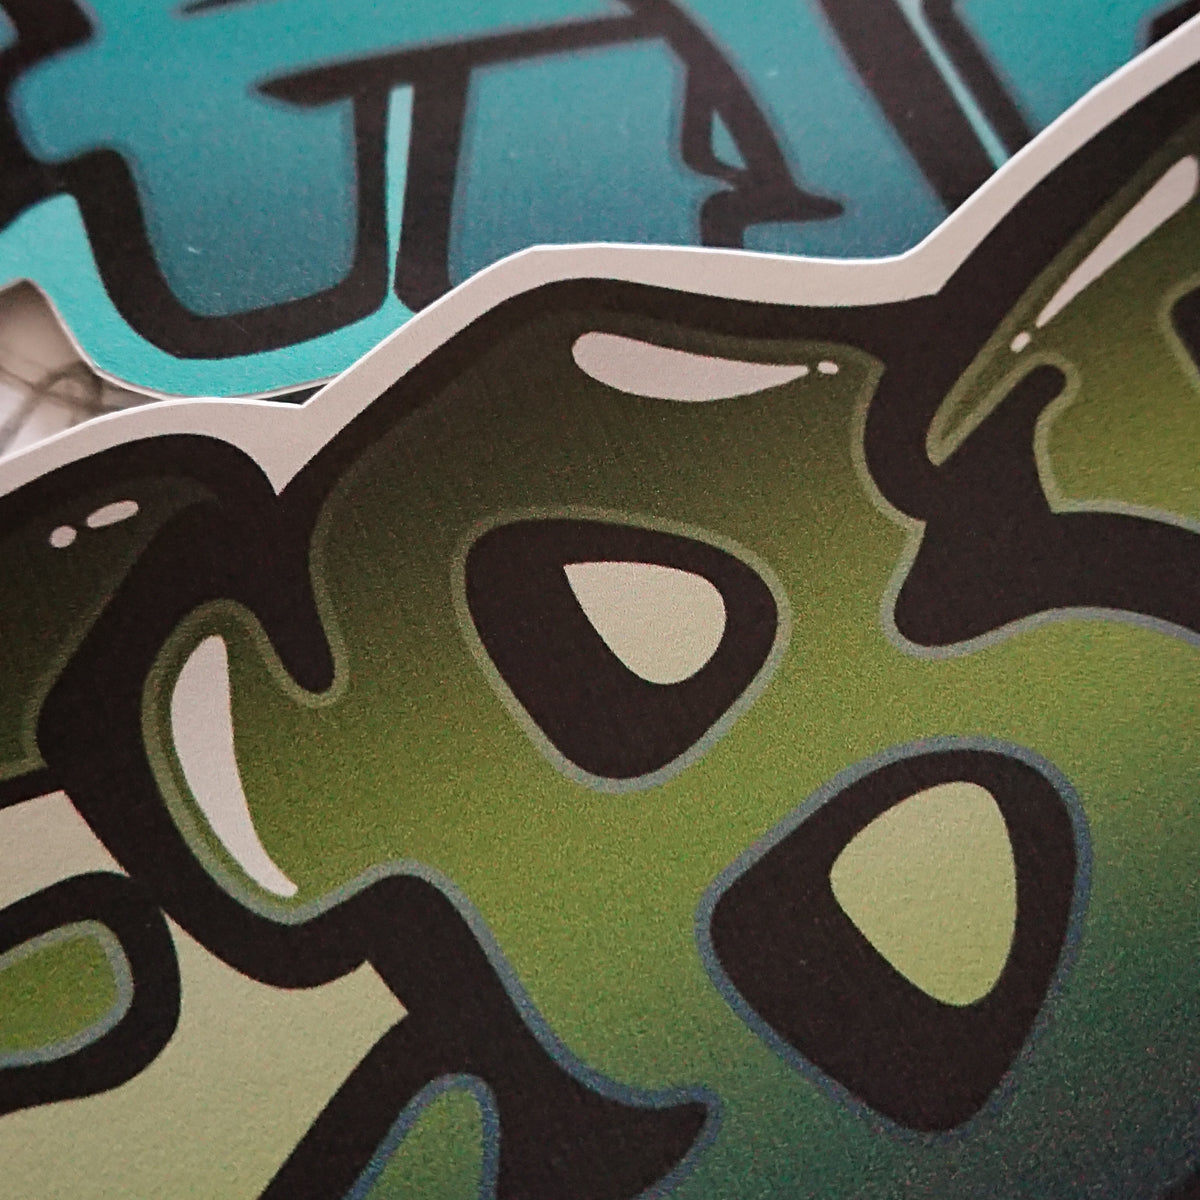 SHRED :: Sticker Collection